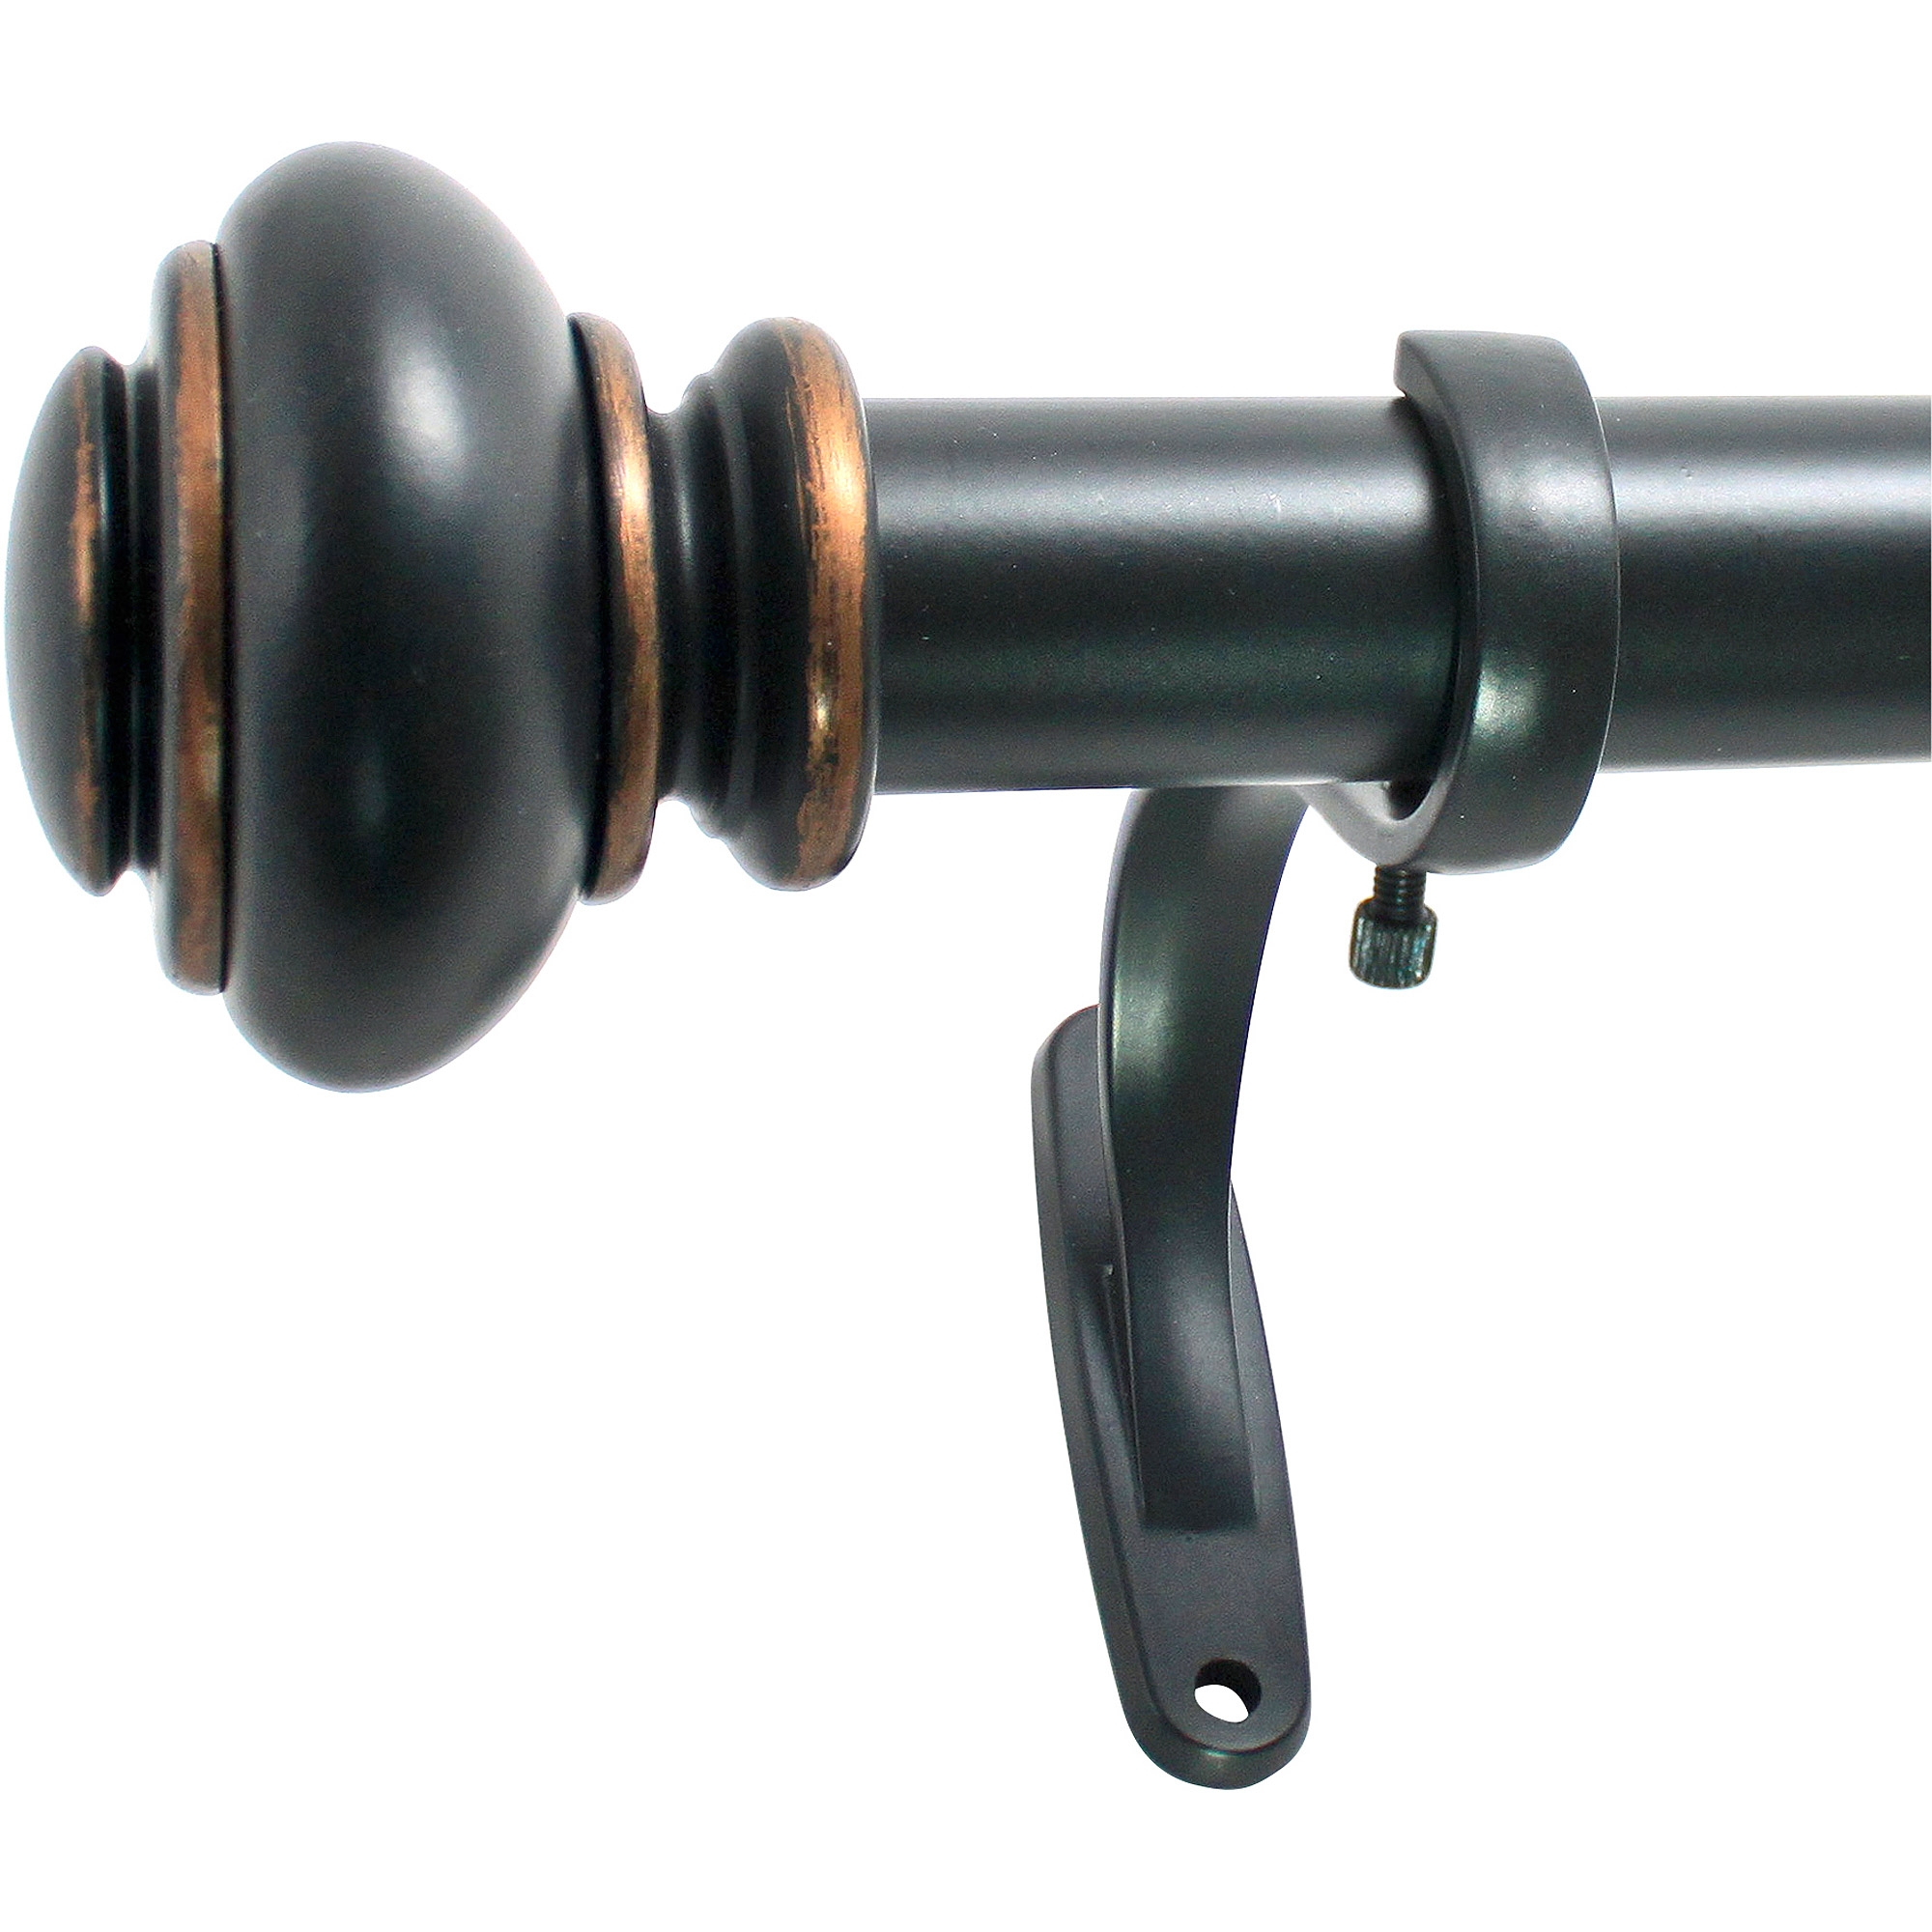 "Decopolitan 1"" Urn Adjustable Curtain Rod Set"